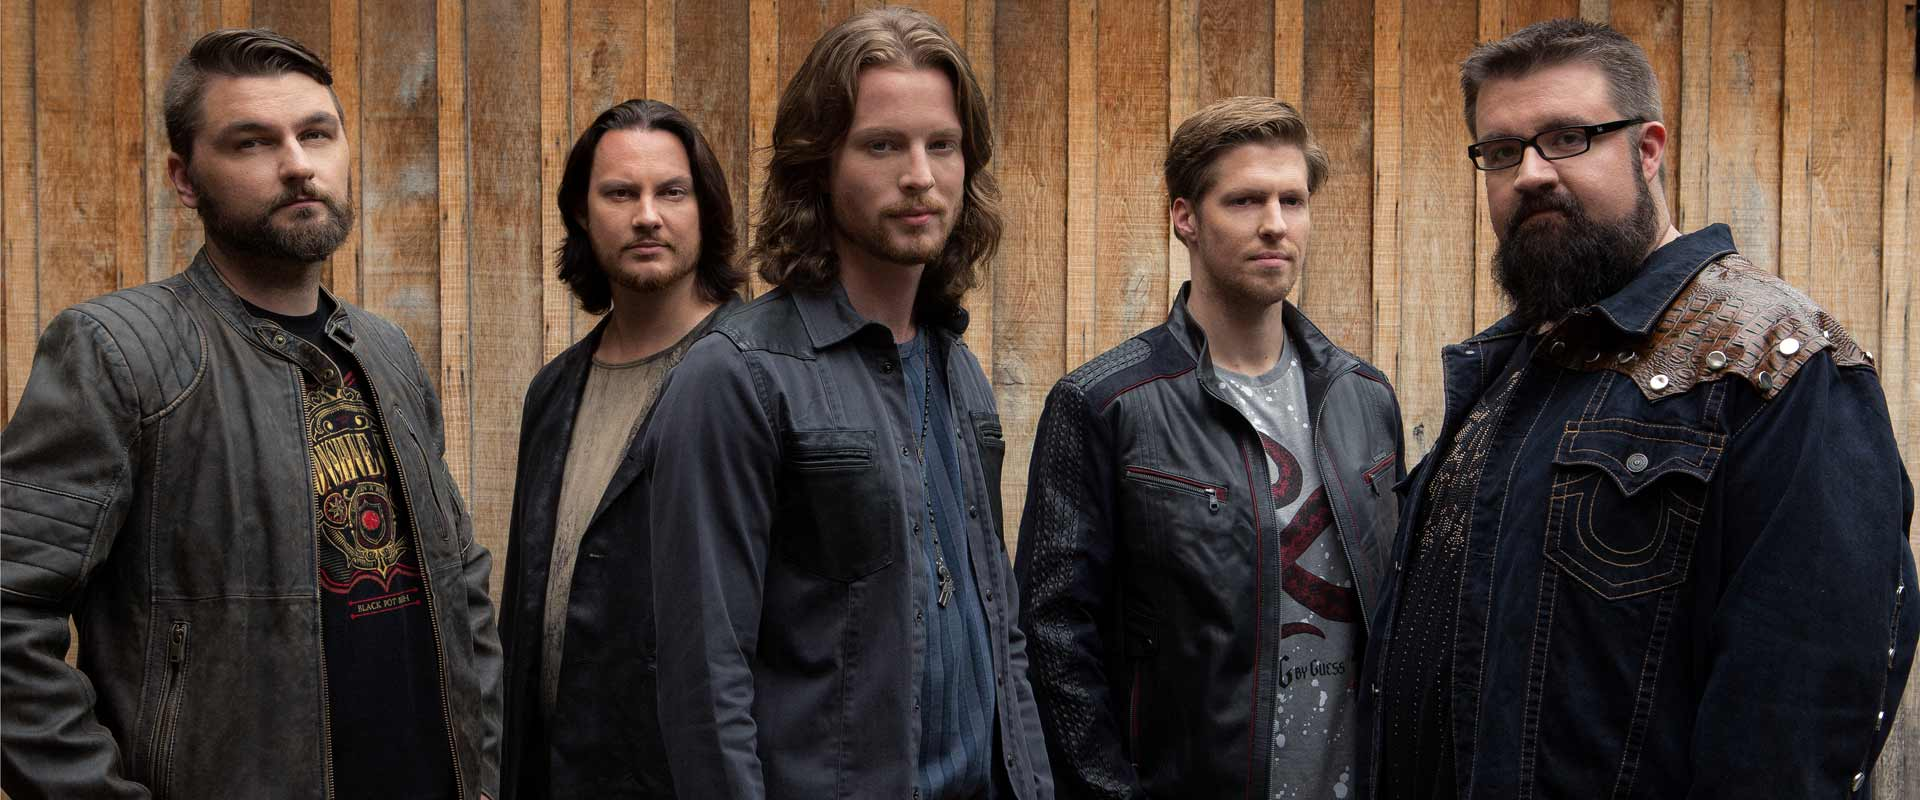 Home Free come to Winnipeg Feb 19, 2019 at Centennial Concert Hall